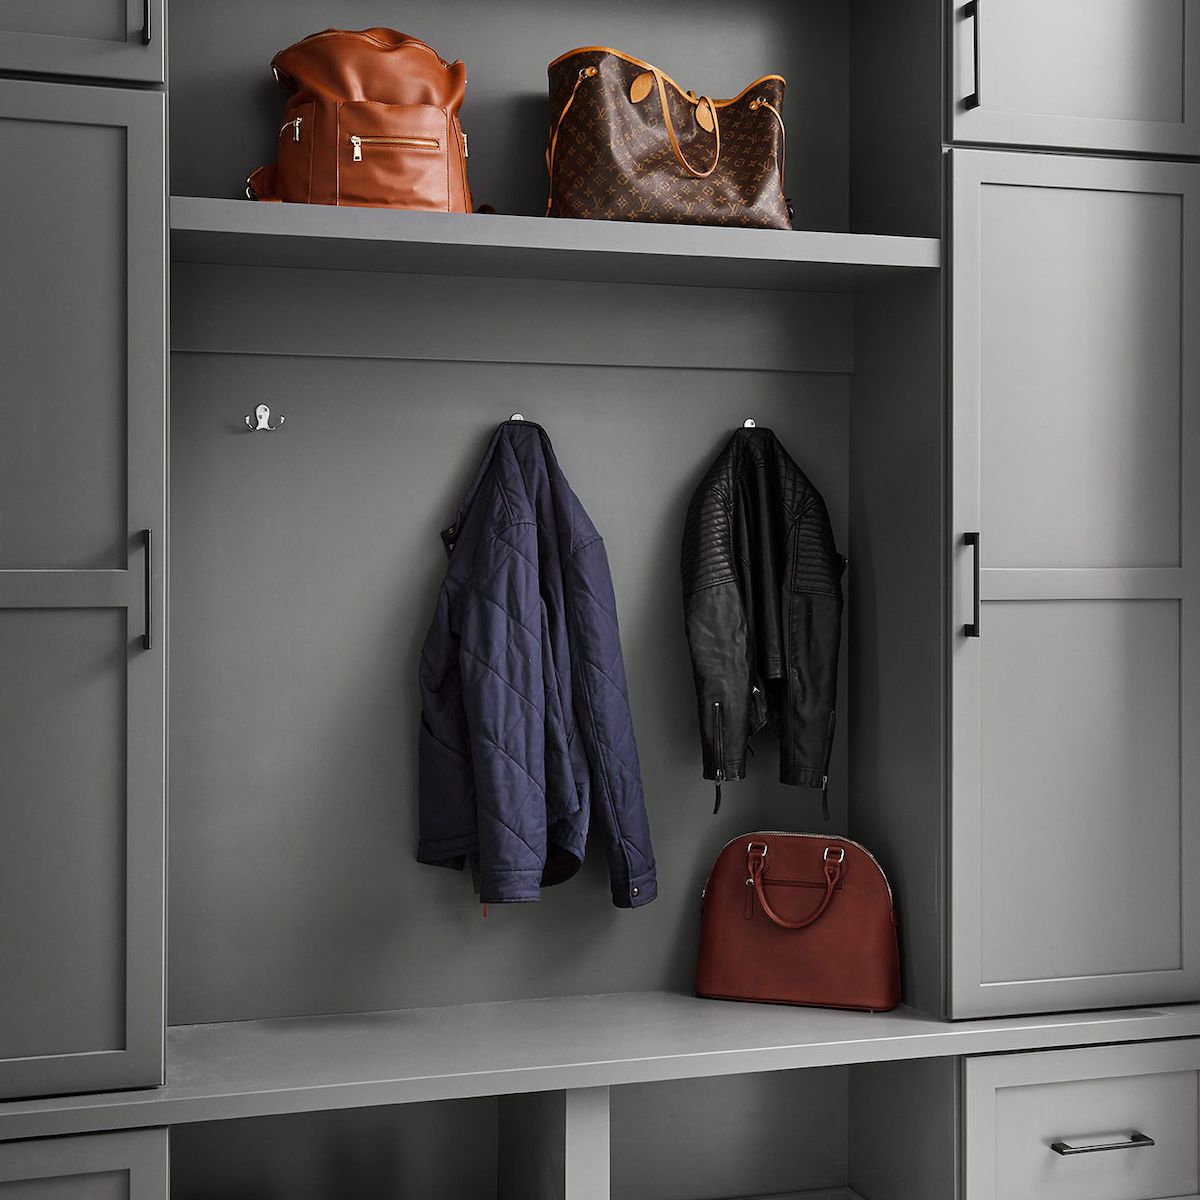 A gray mudroom with several cabinets and shelves